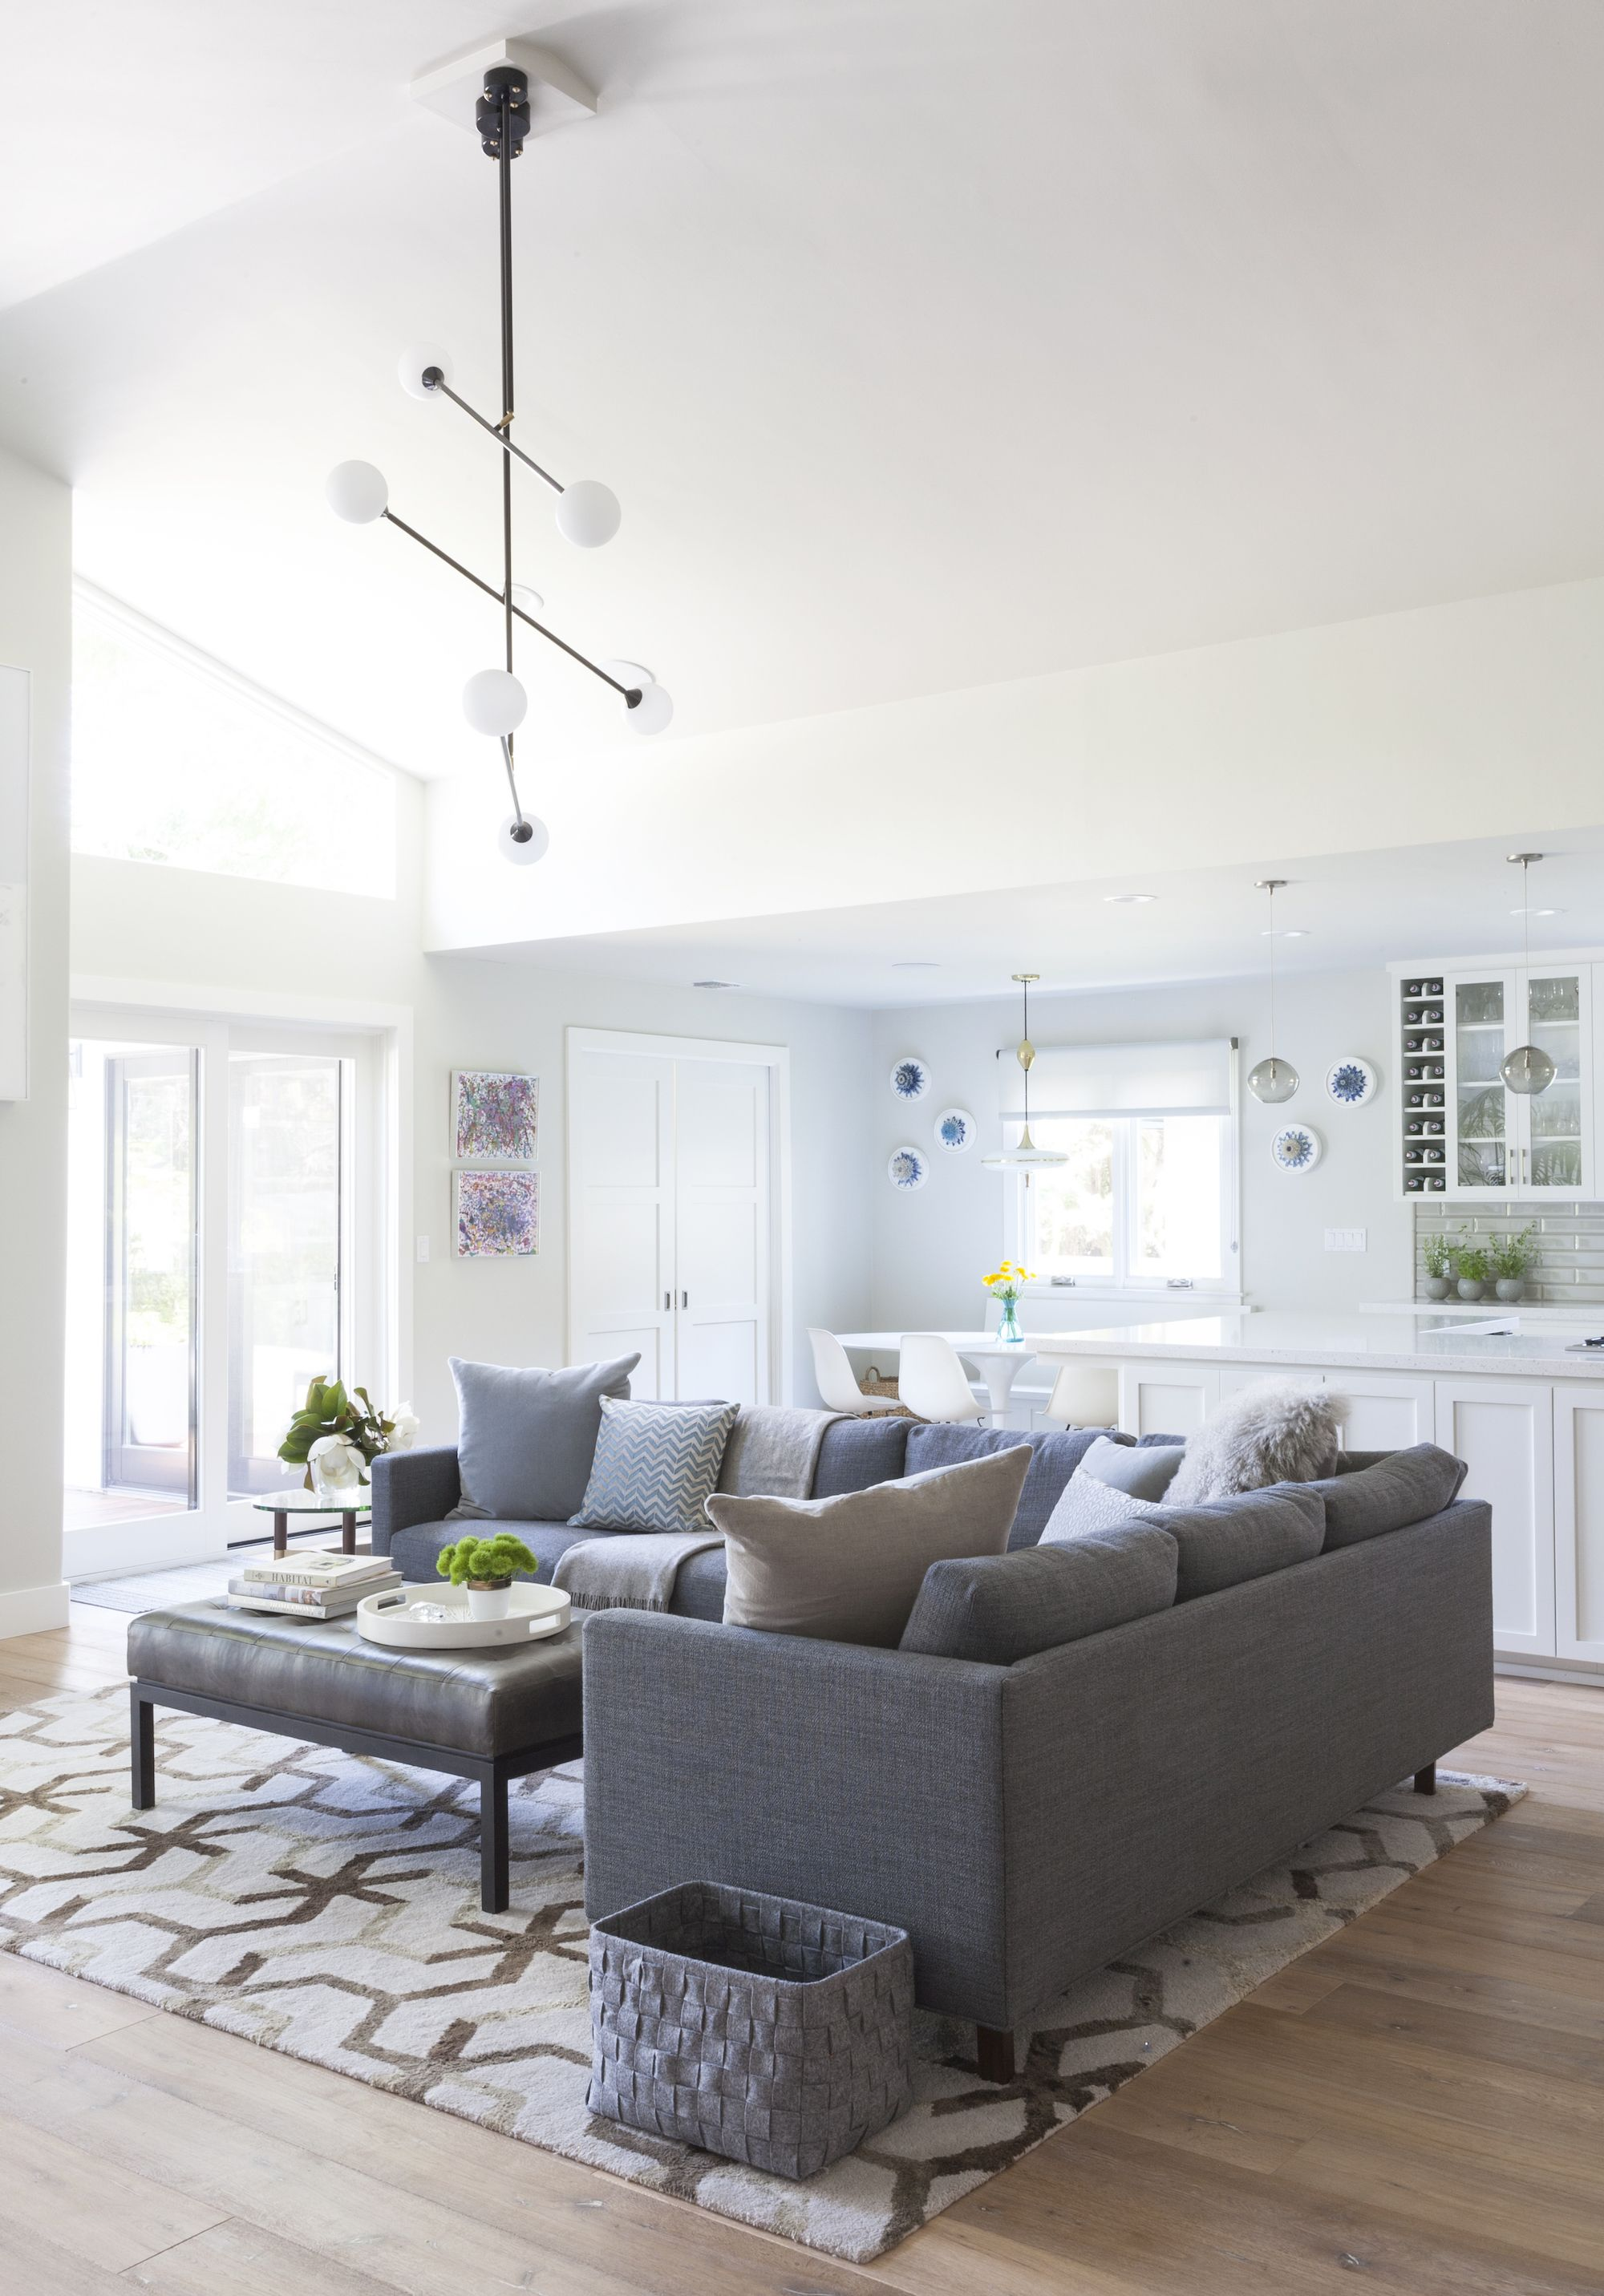 Sectional Sofa For Small Living Room - home decor photos gallery